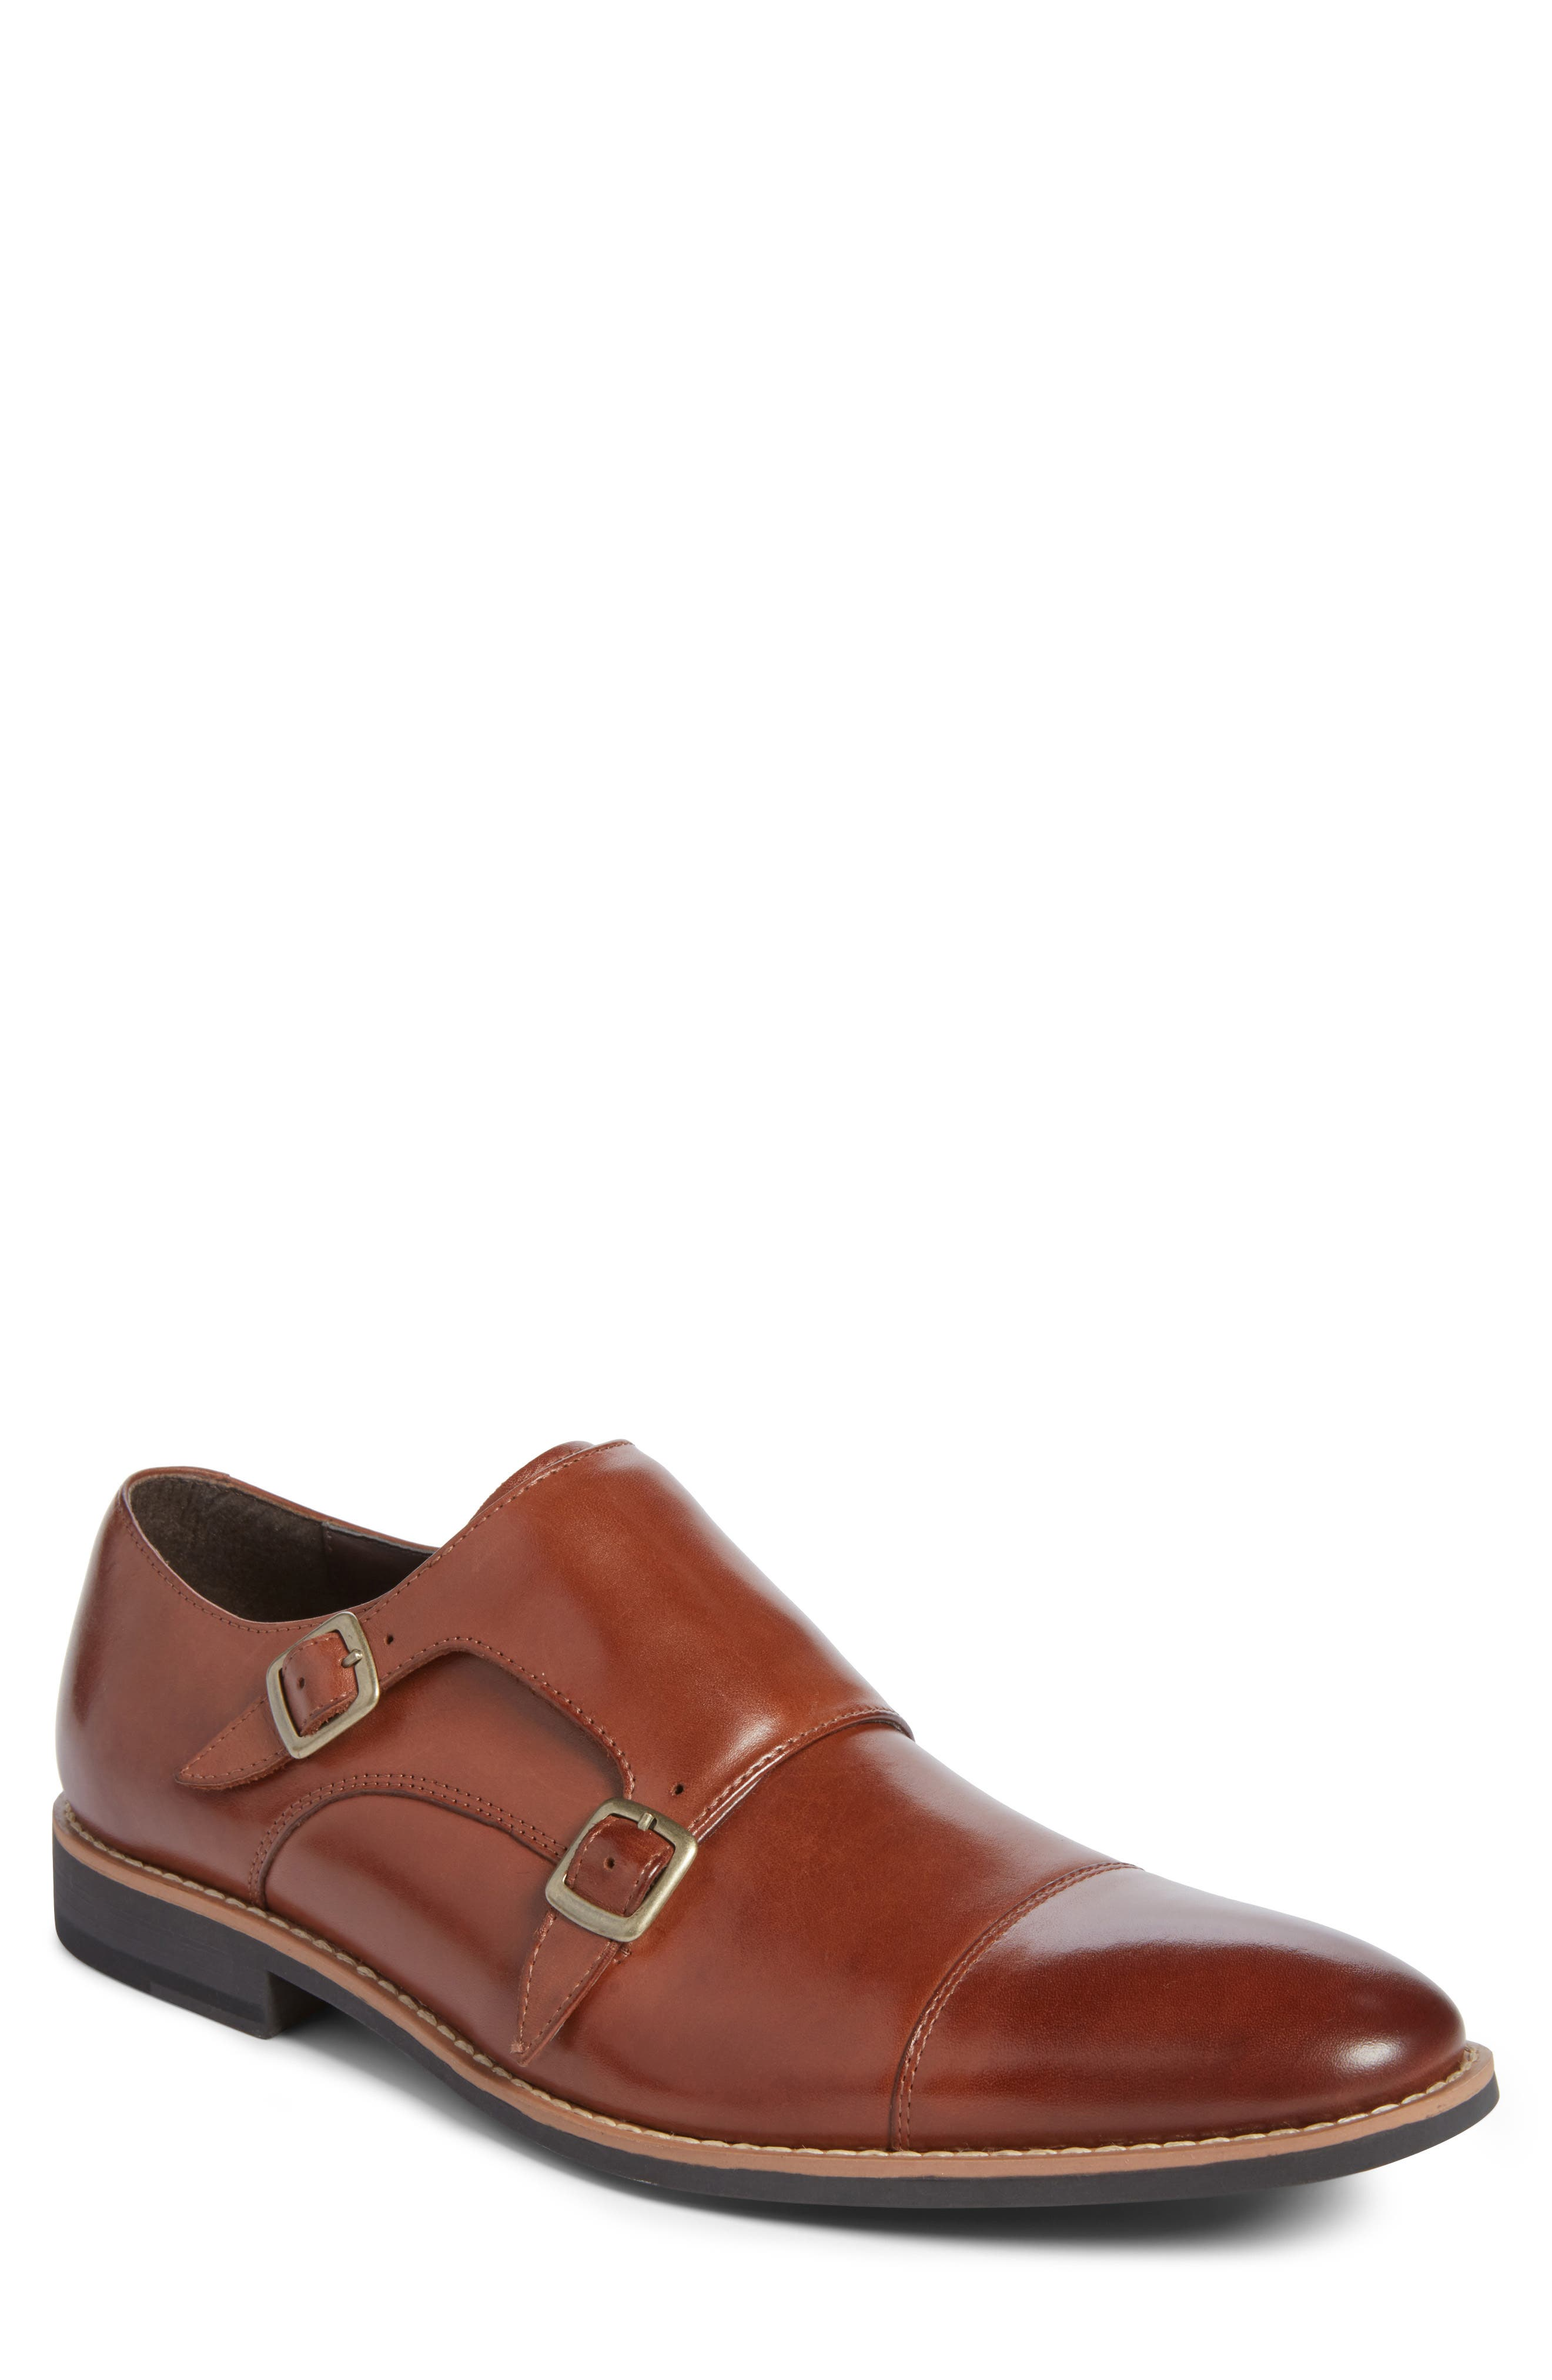 Alternate Image 1 Selected - The Rail Torance Double Monk Strap Shoe (Men)